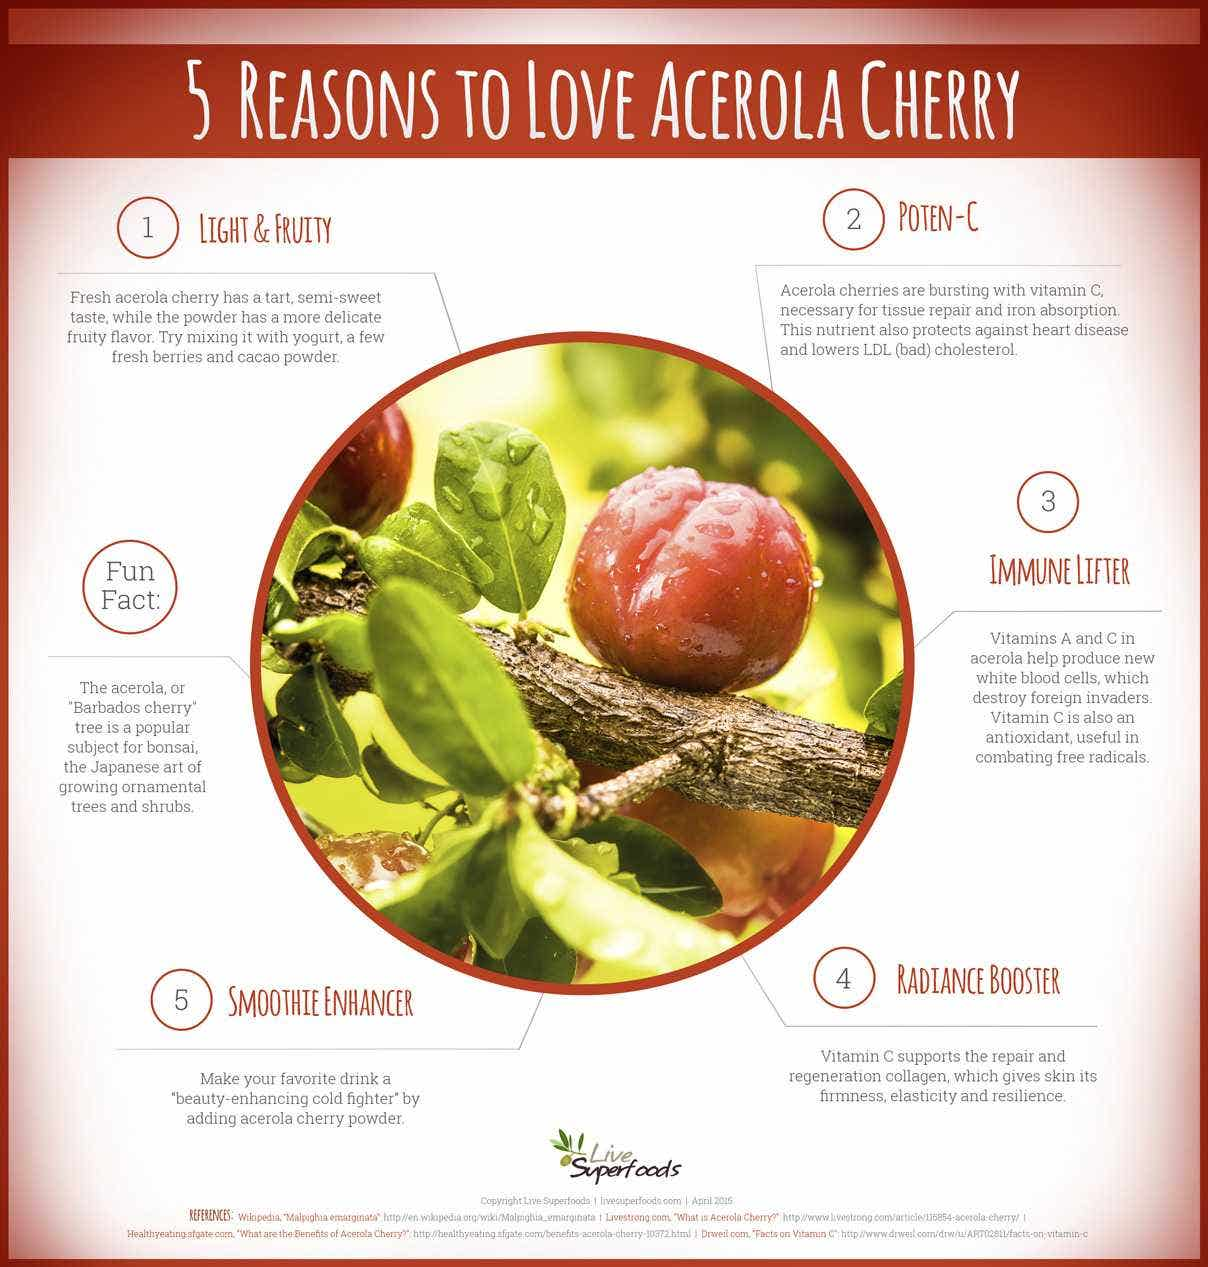 5 Reasons to Love Acerola Cherry